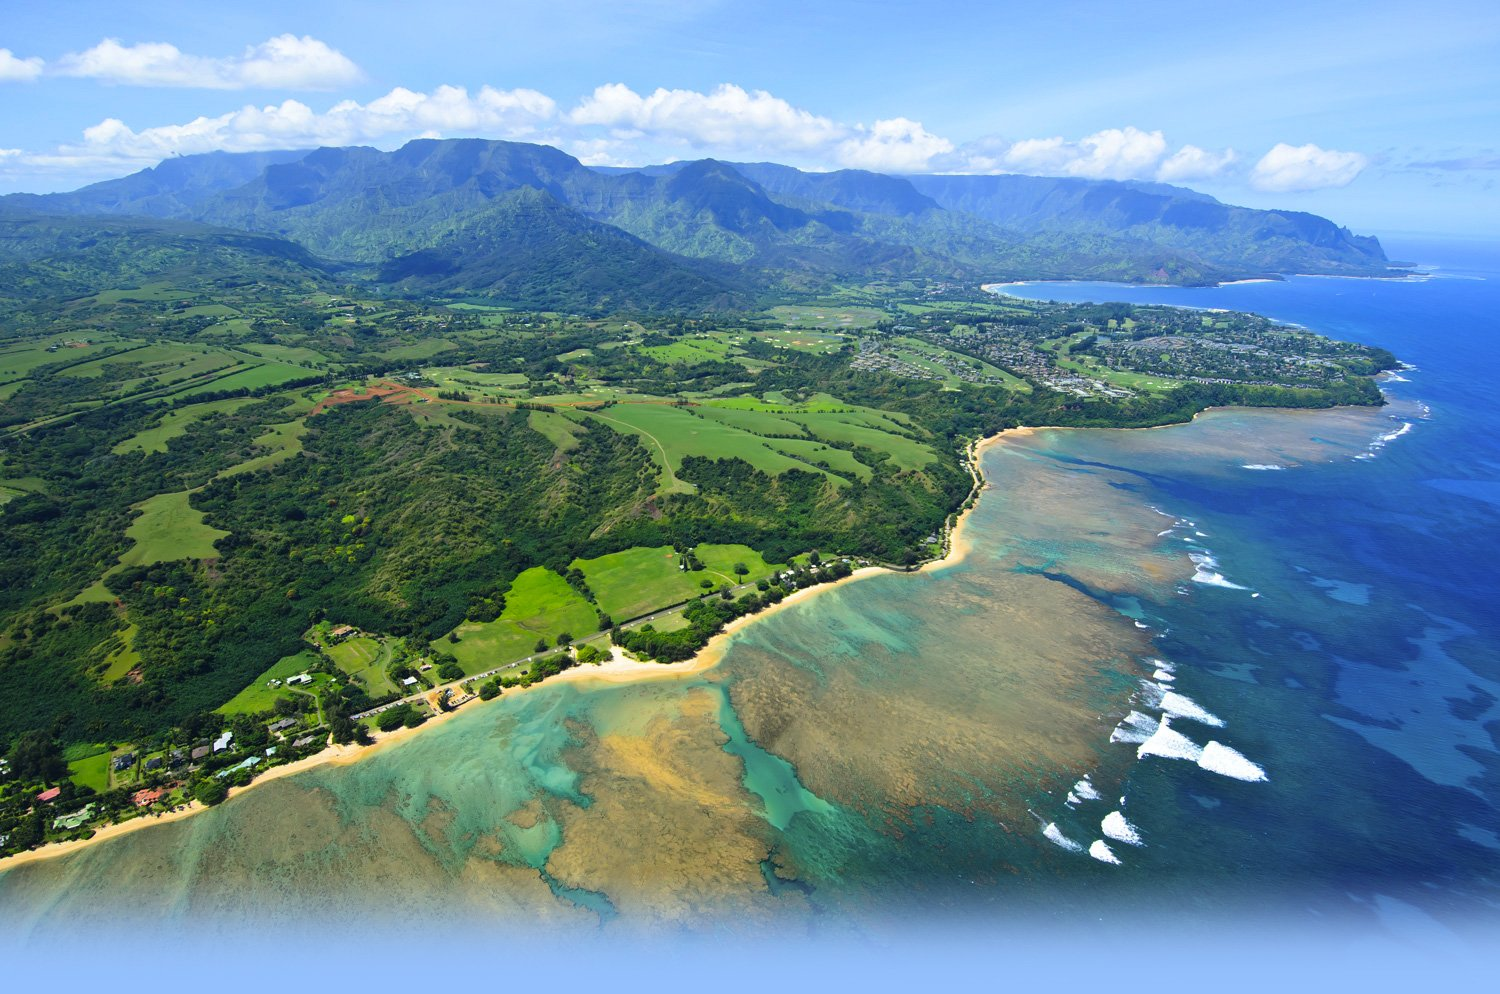 Kauai Hotels, Luxury Accommodations - Princeville at Hanalei Kauai